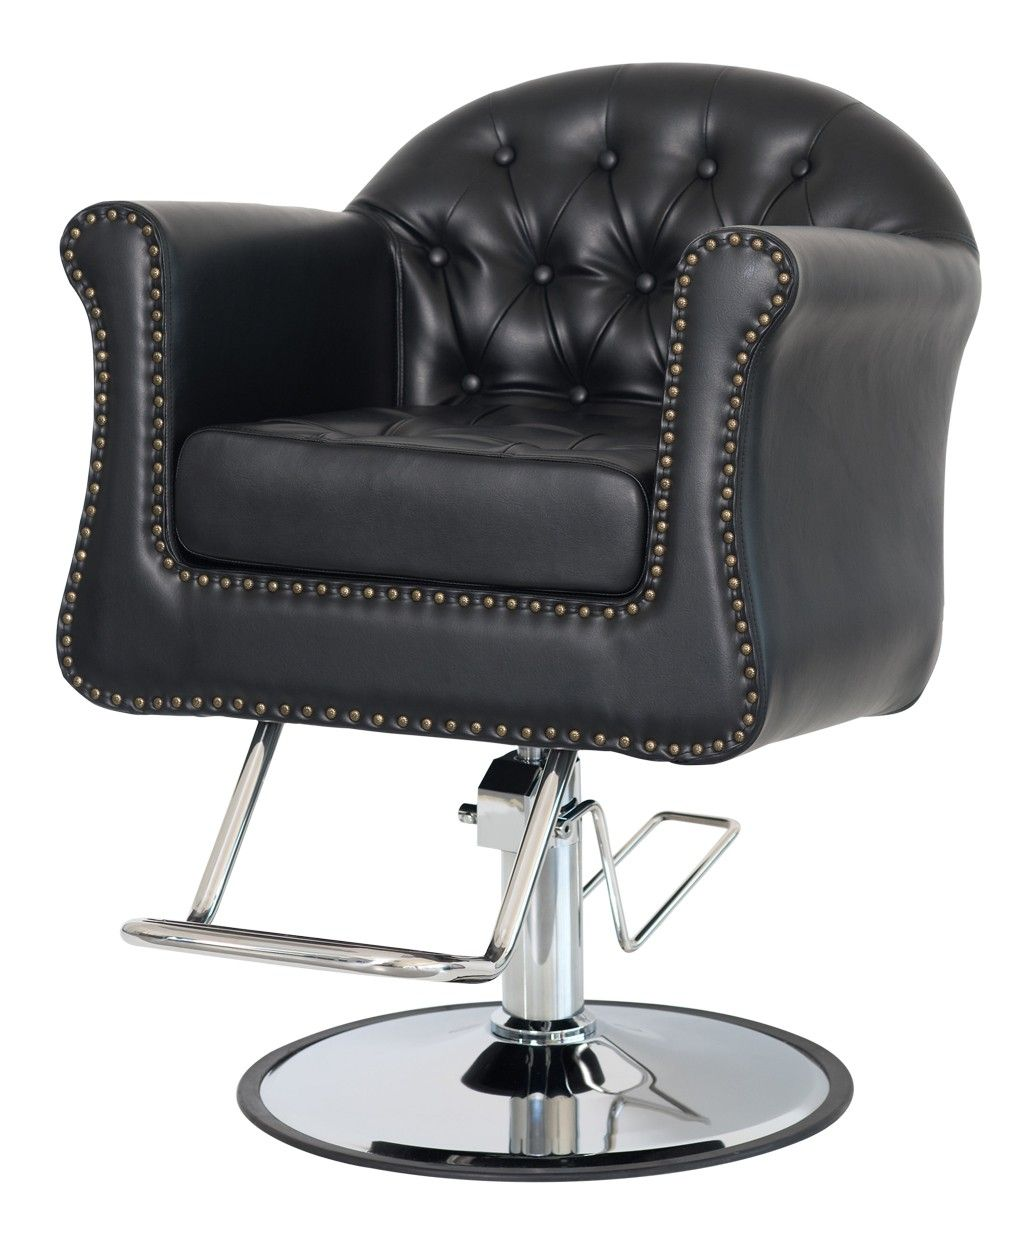 Salon Style New Yorkais brooklyn styling chair | salon styling chairs, salon chairs